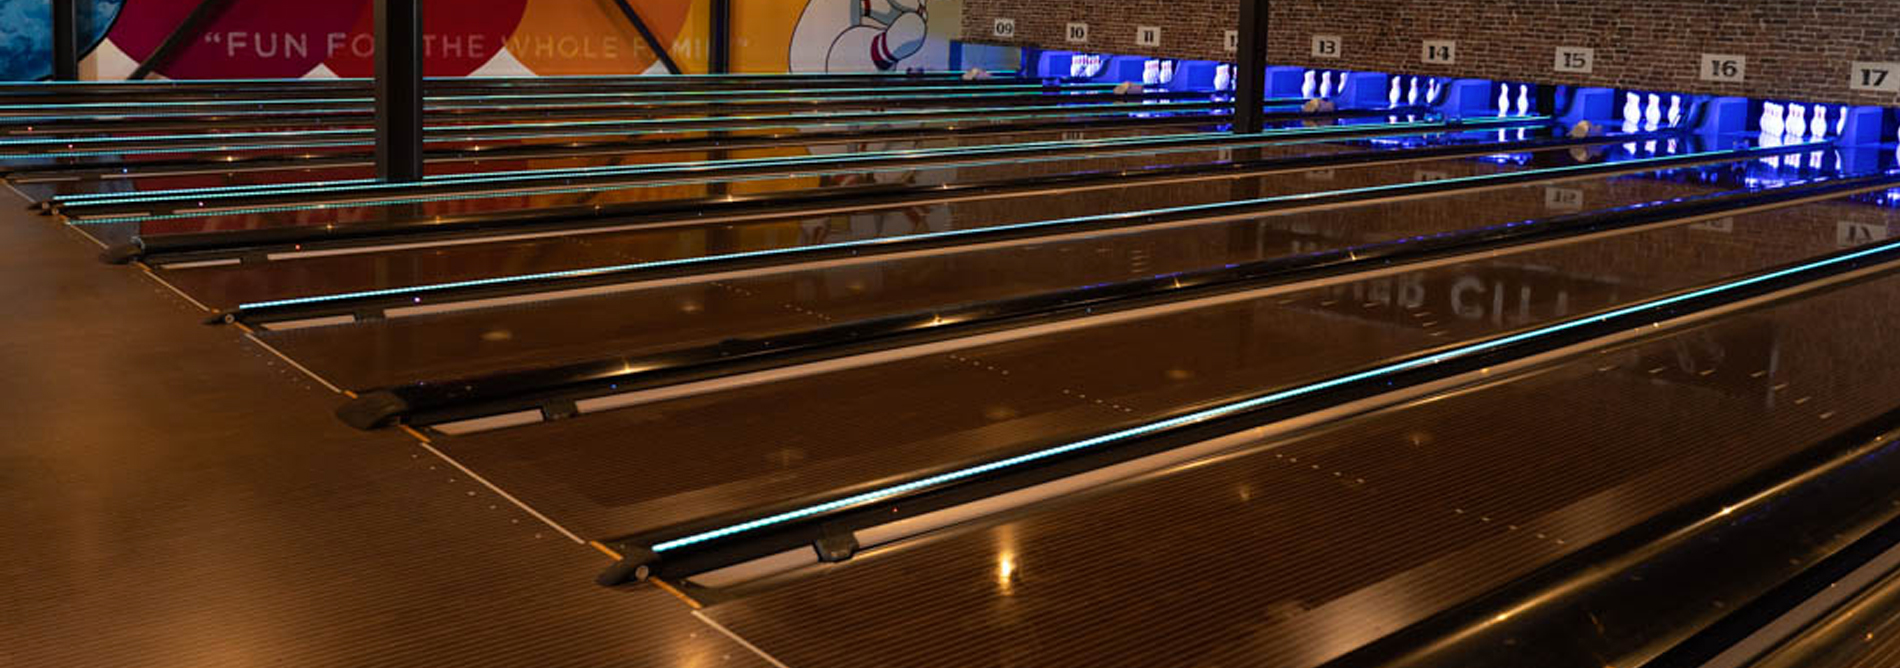 Bowling-QubicaAMF-CAPPING-LIGHTS-A-more-impactful-bowling-experience-banner.jpg